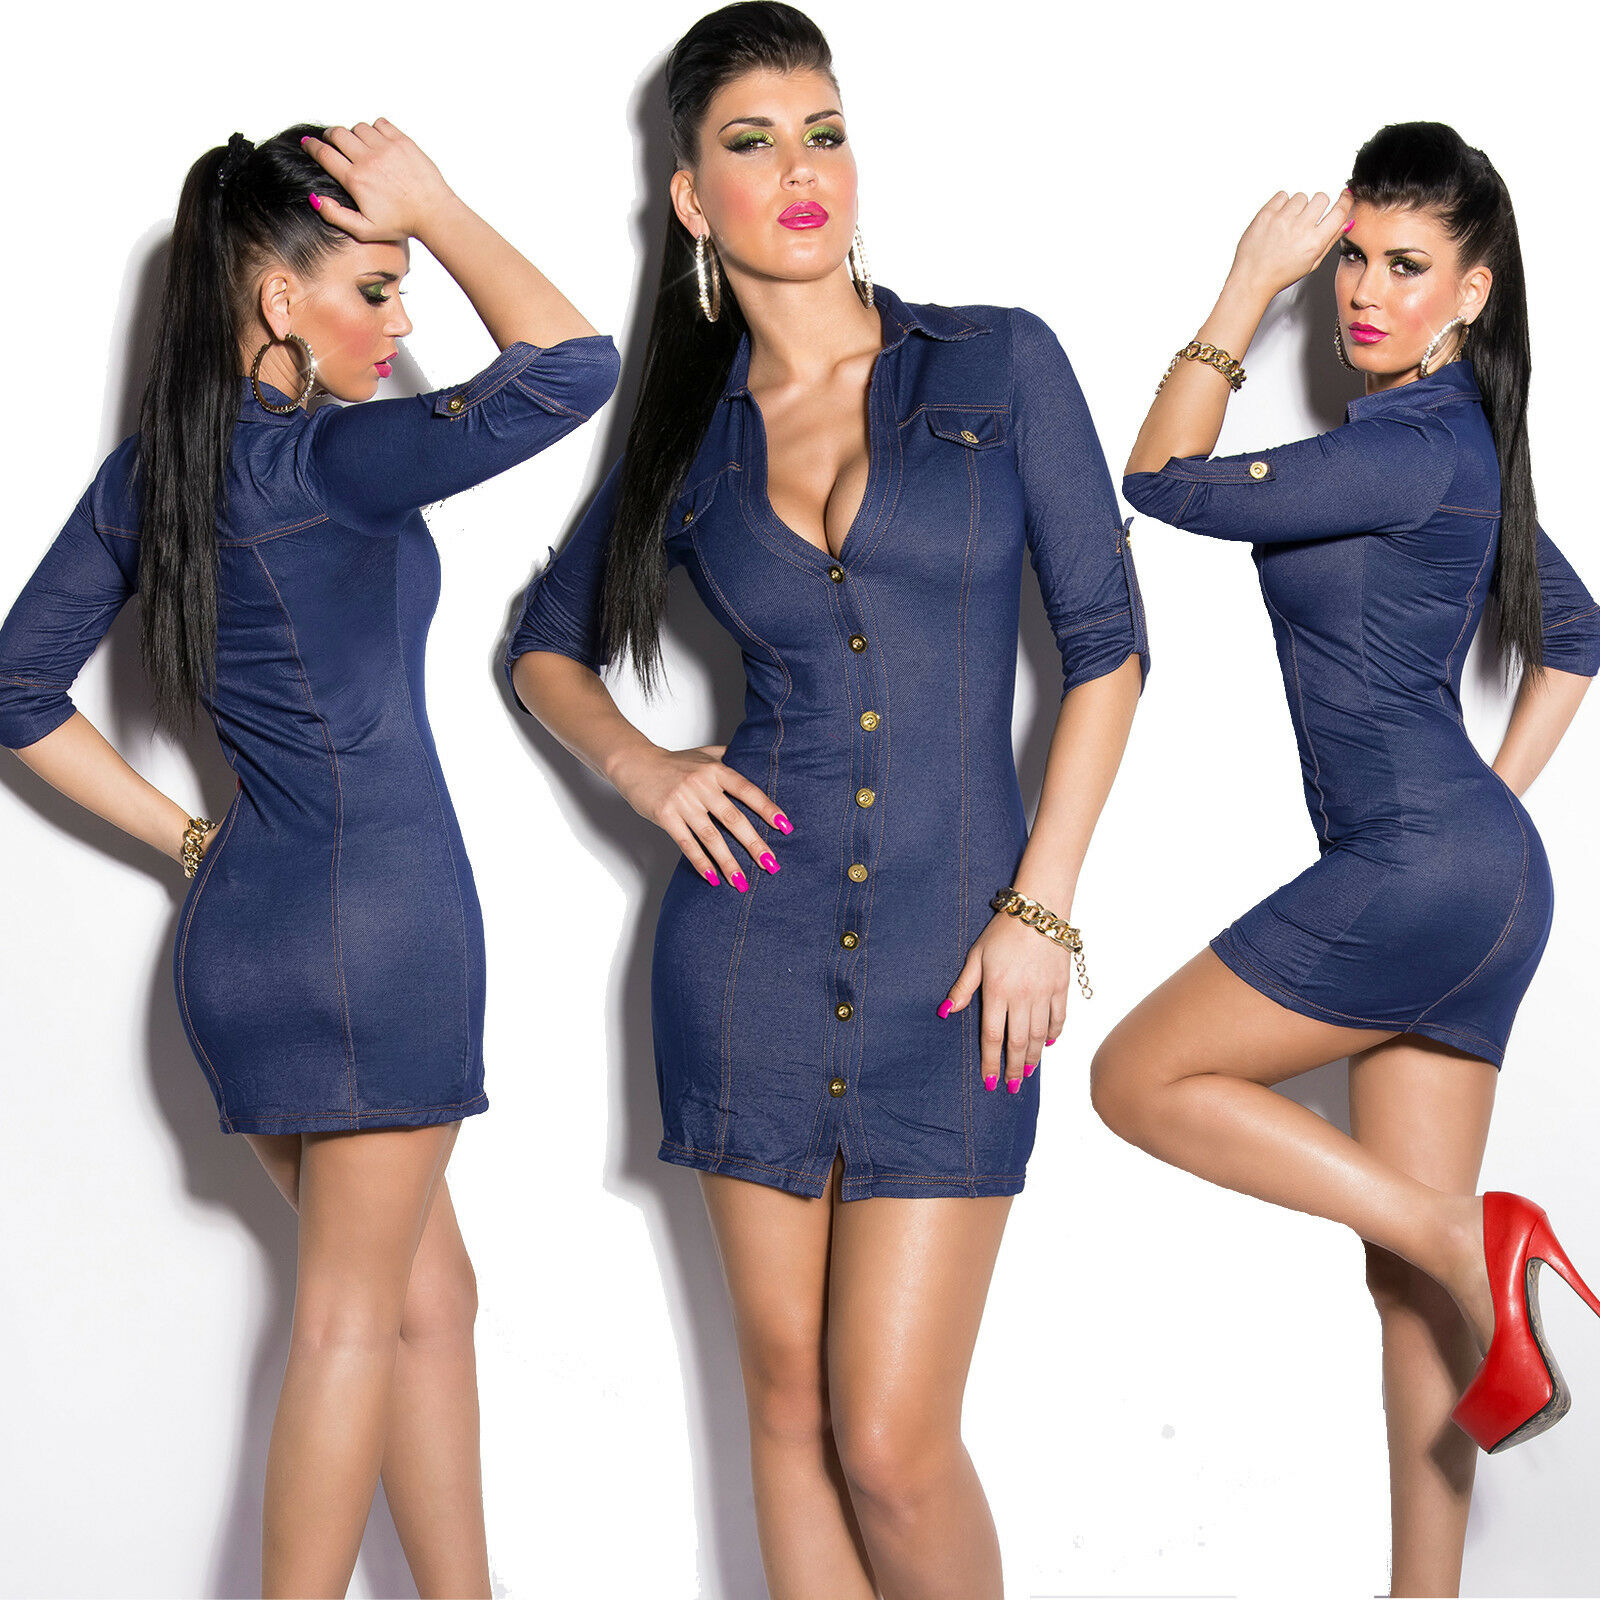 Top Women Mini Dress Clubbing Ladies bluee Jeans Look Blouse Size 10 12 38 40 M L